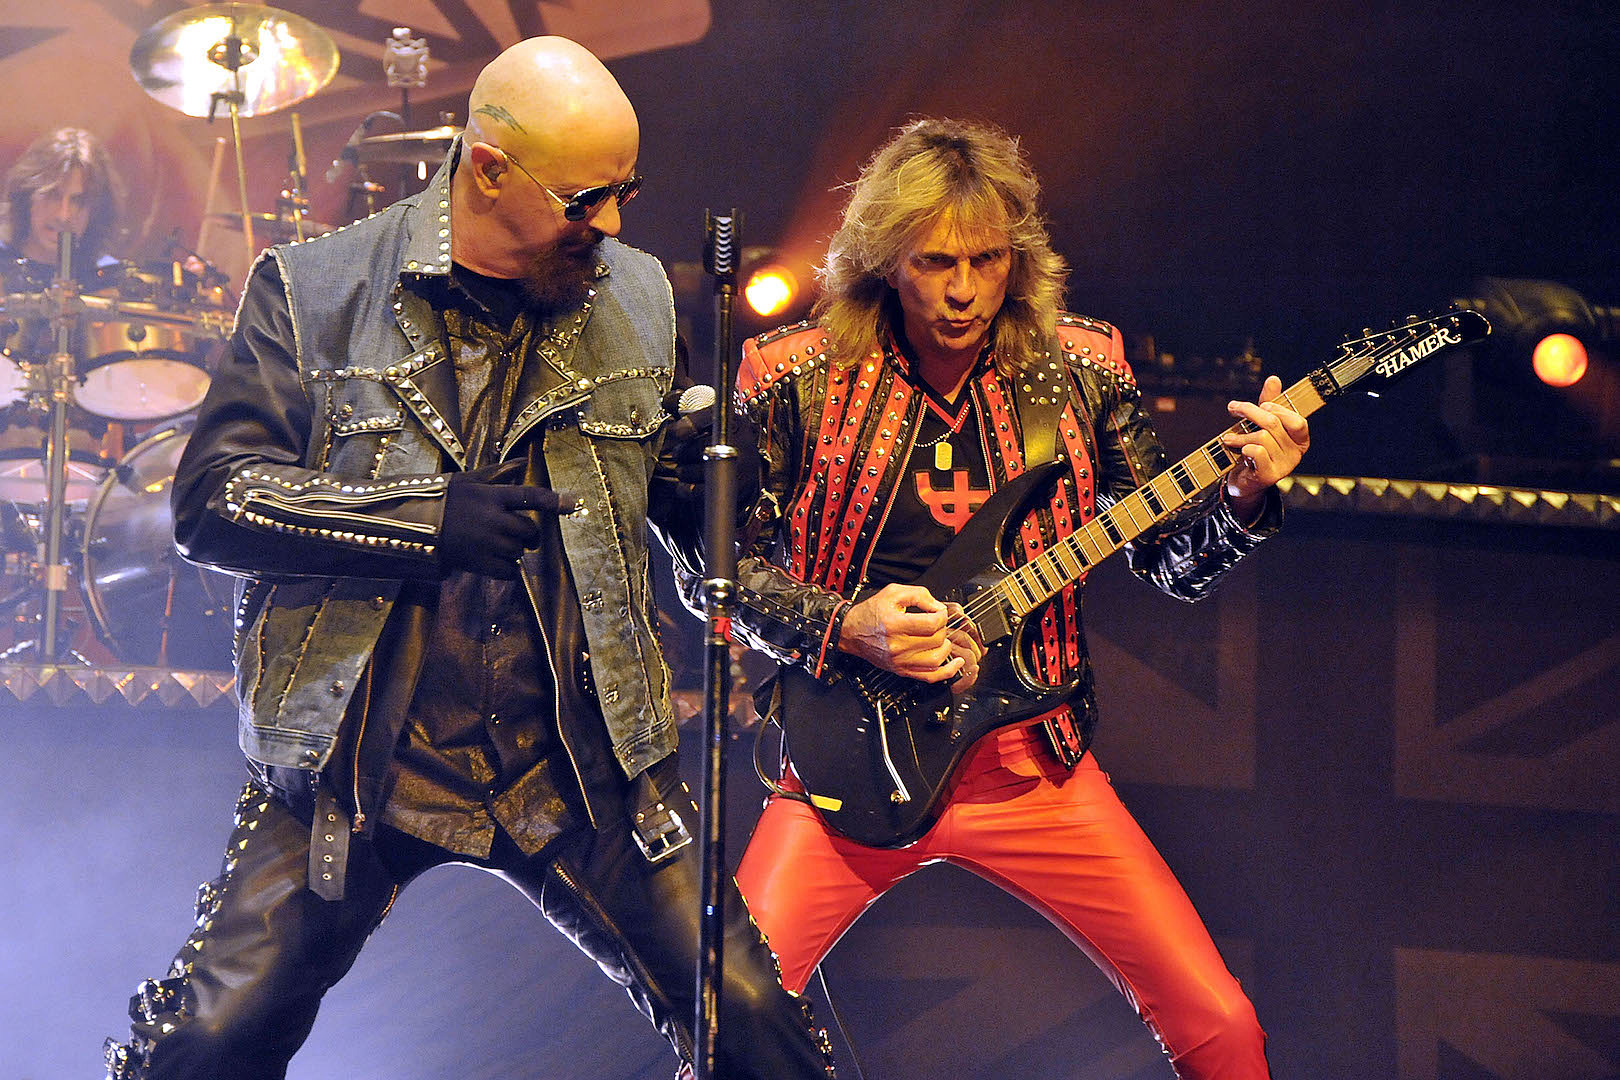 Judas Priest 'Just About Done' Tracking 18th Studio Album